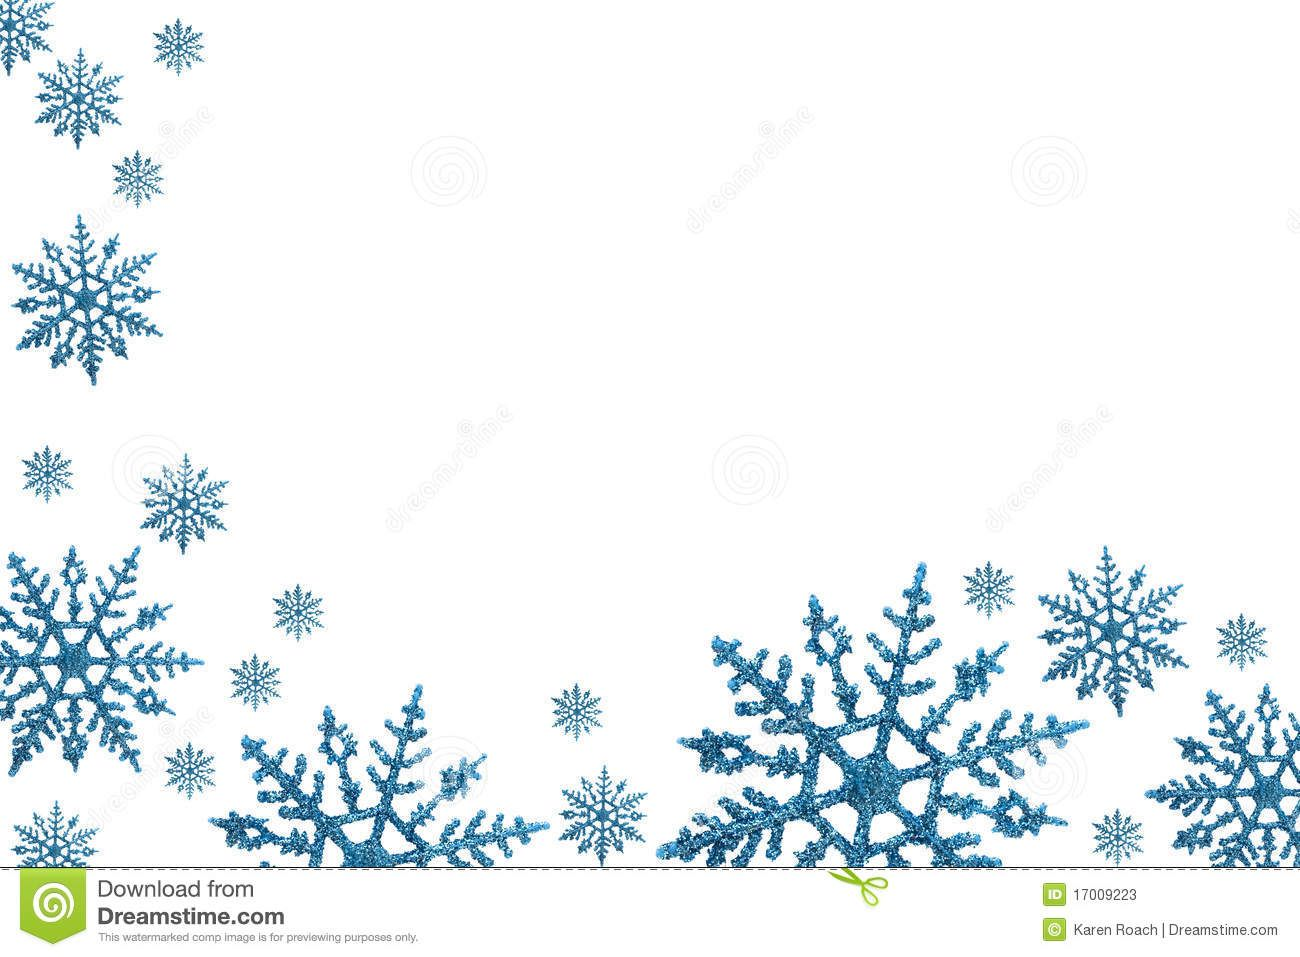 Snow clipart winter vacation.